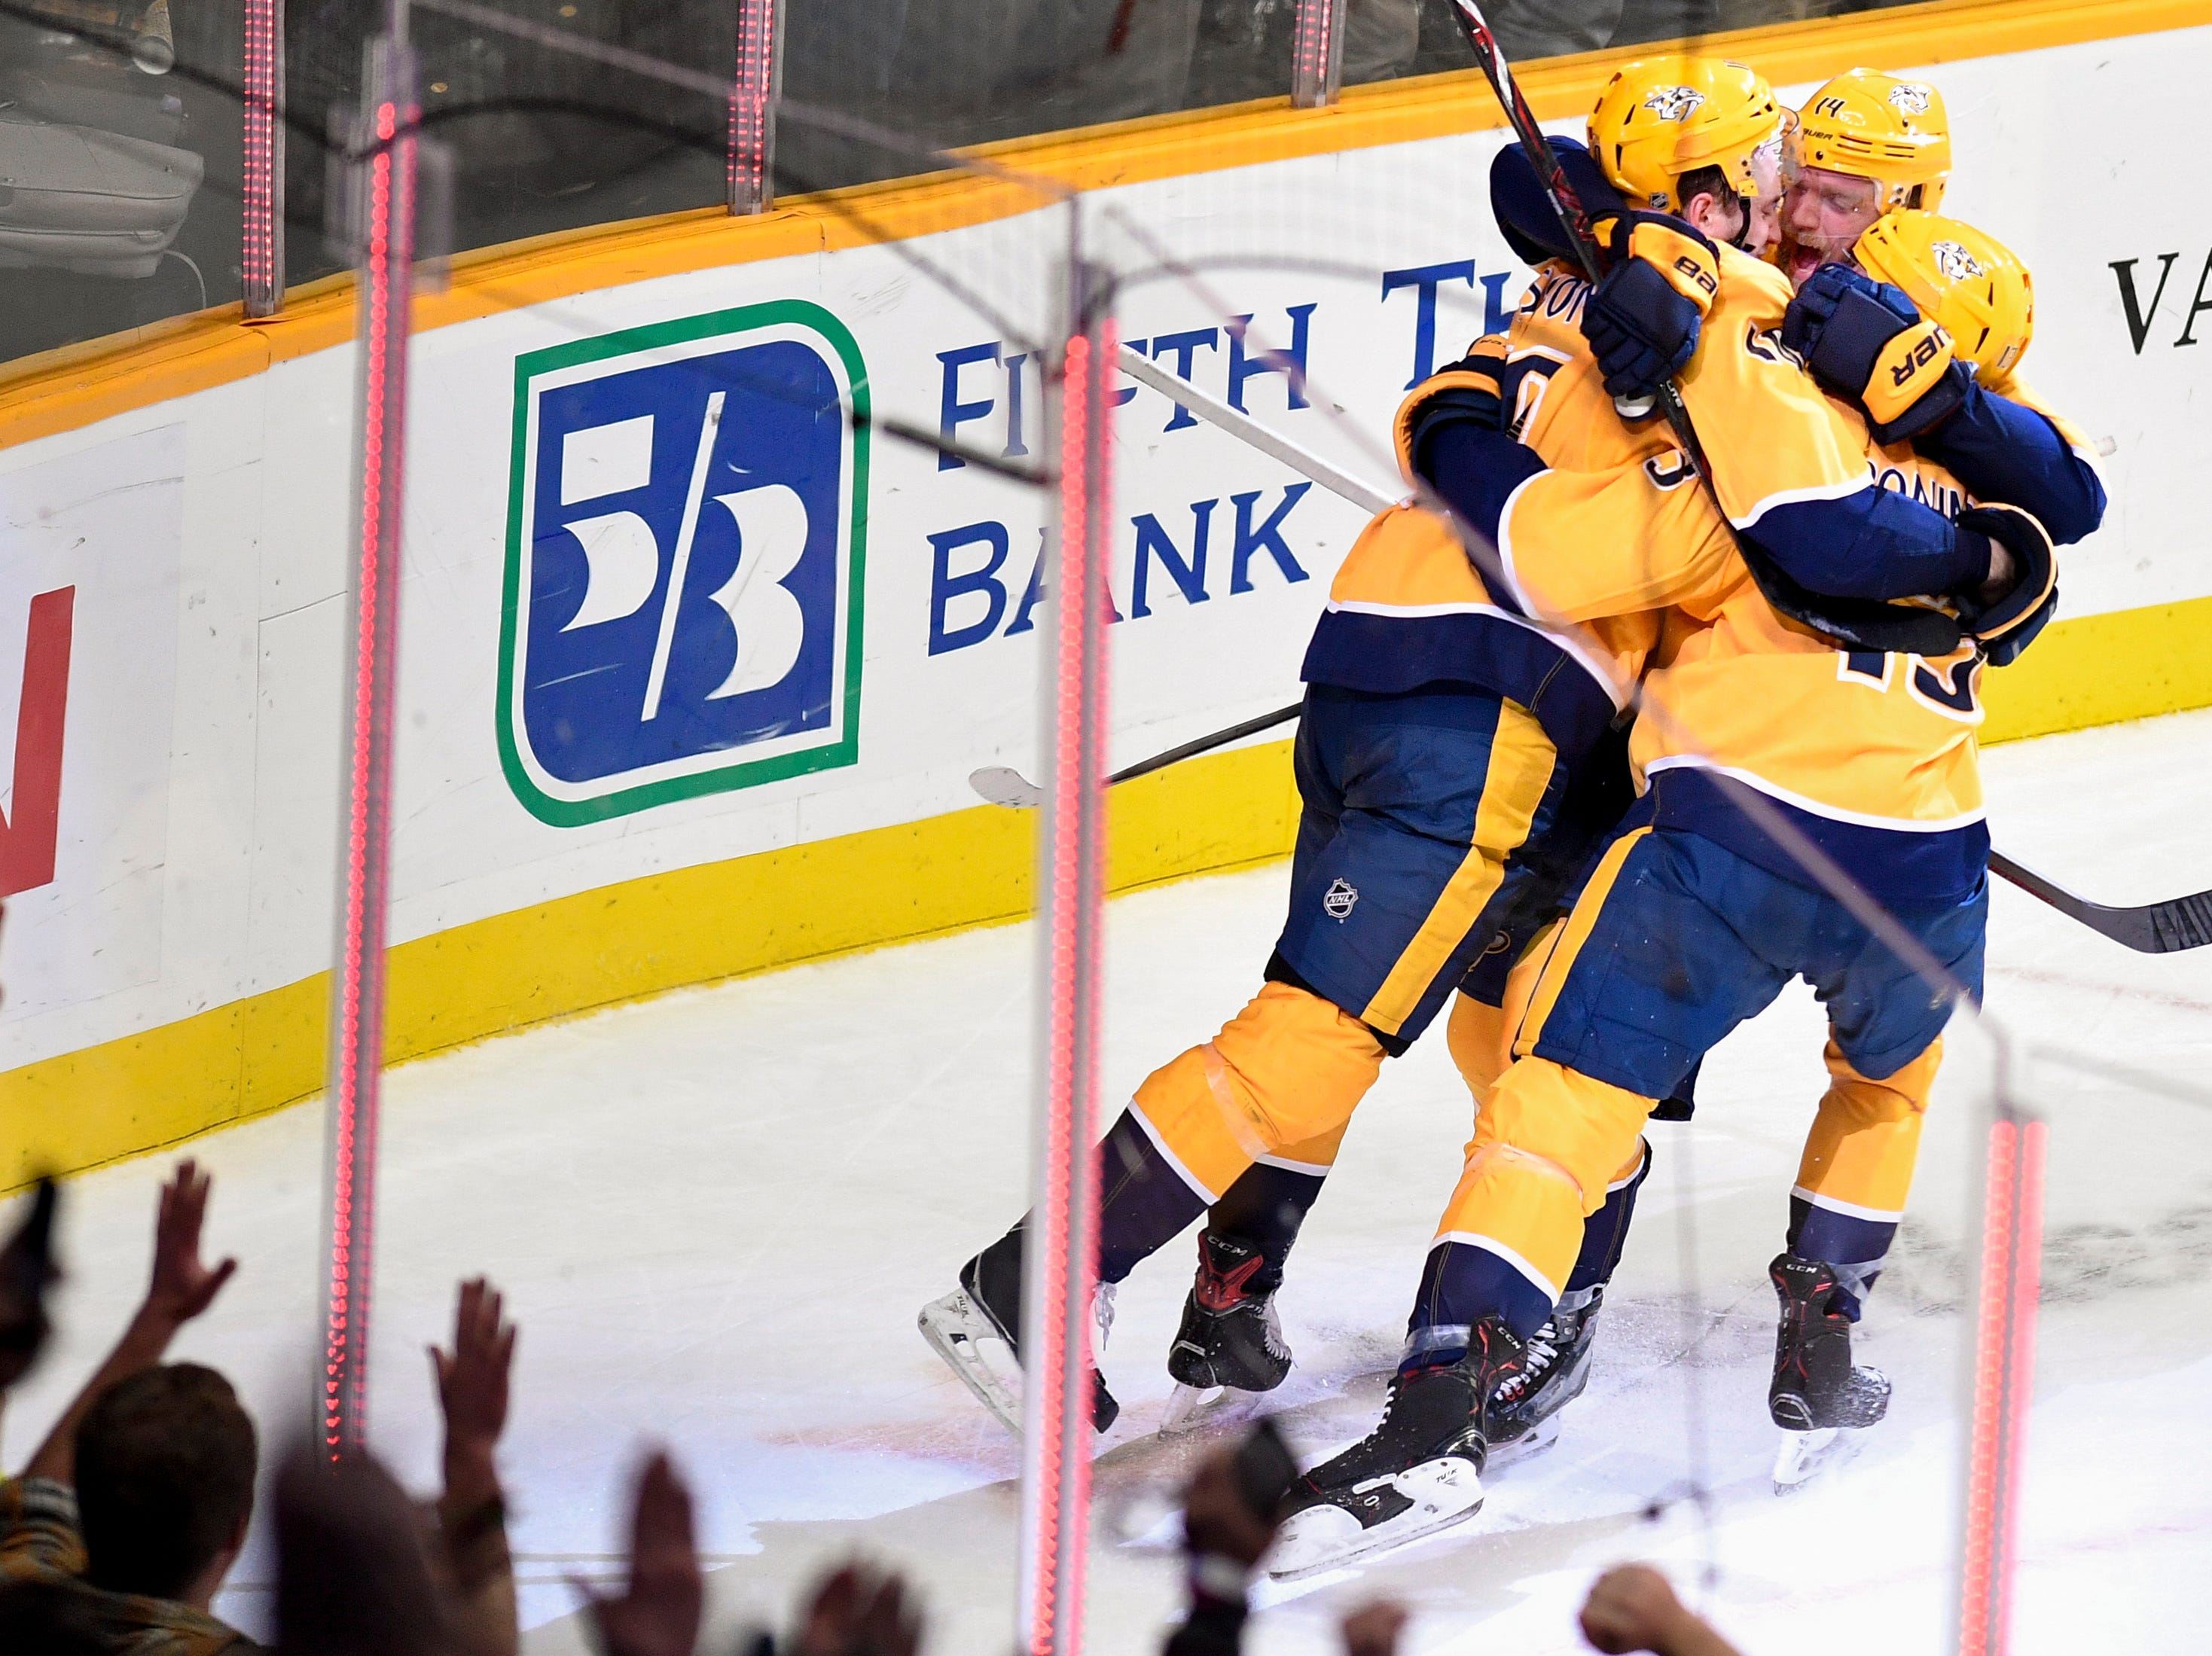 Nashville Predators center Colton Sissons (10) celebrates his game-winning goal against the Vancouver Canucks with defenseman Mattias Ekholm (14) and center Nick Bonino (13) in overtime at Bridgestone Arena in Nashville, Tenn., Thursday, Dec. 13, 2018.